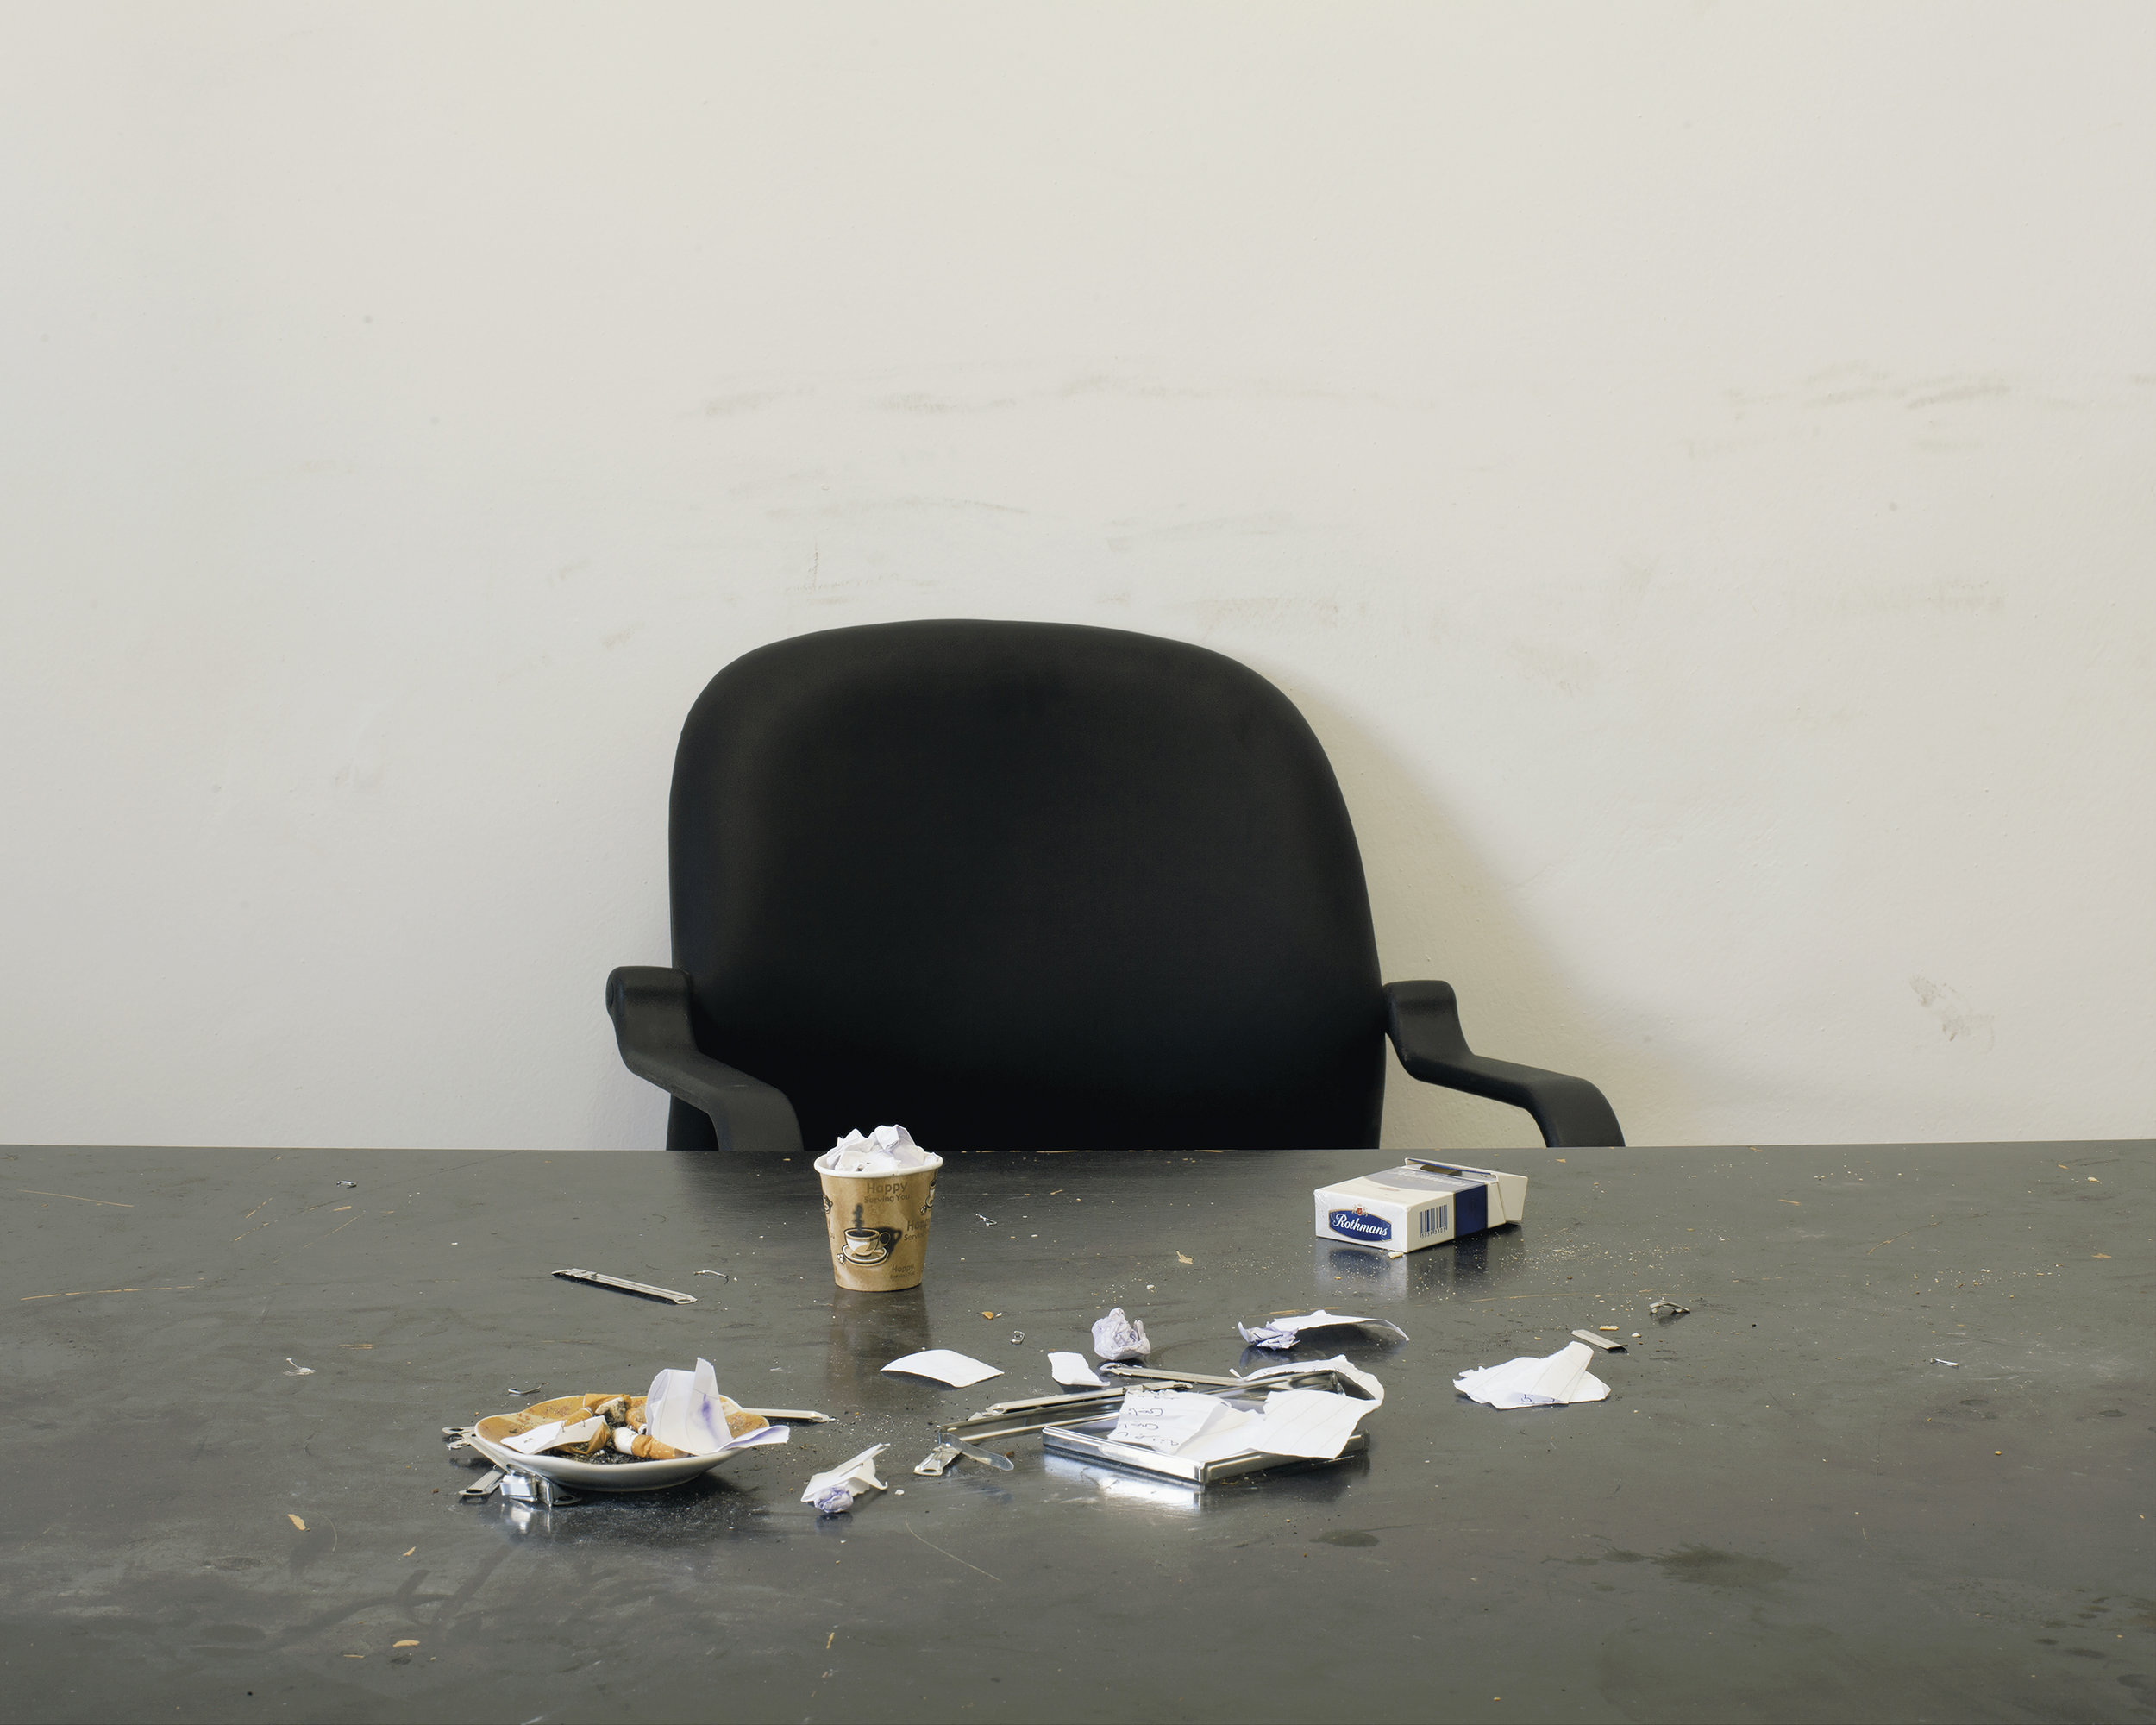 Edmund Clark, A room formerly used for interrogations in the Libyan intelligence service facility at Tajoura, Tripoli, from Negative Publicity: Artefacts of Extraordinary Rendition, 2015, by Crofton Black and Edmund Clark